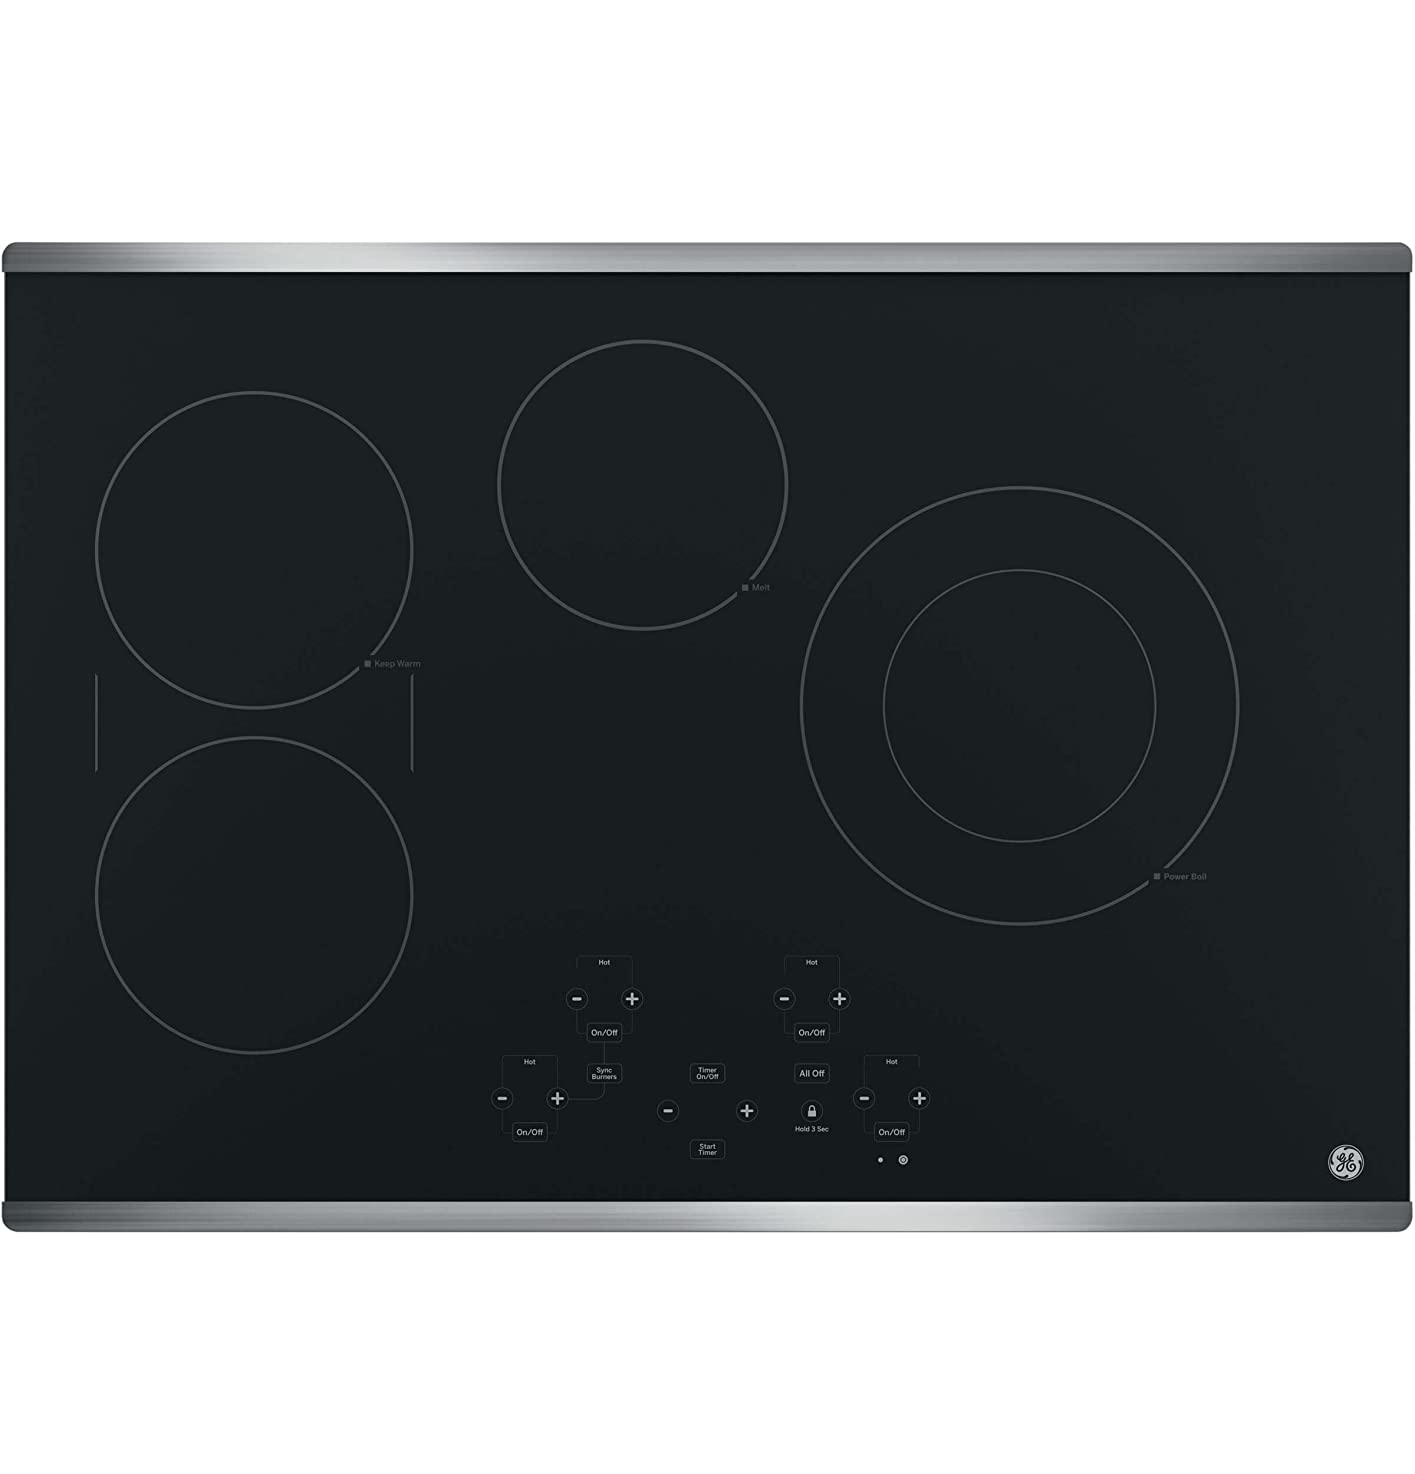 GE JP5030SJSS 30 Inch Smoothtop Electric Cooktop with SyncBurner, Keep Warm, Digital Touch Controls, 4 Radiant Elements, Built-in Timer, Melt Setting, ADA Compliant Fits Guarantee cnqtommauwboi5